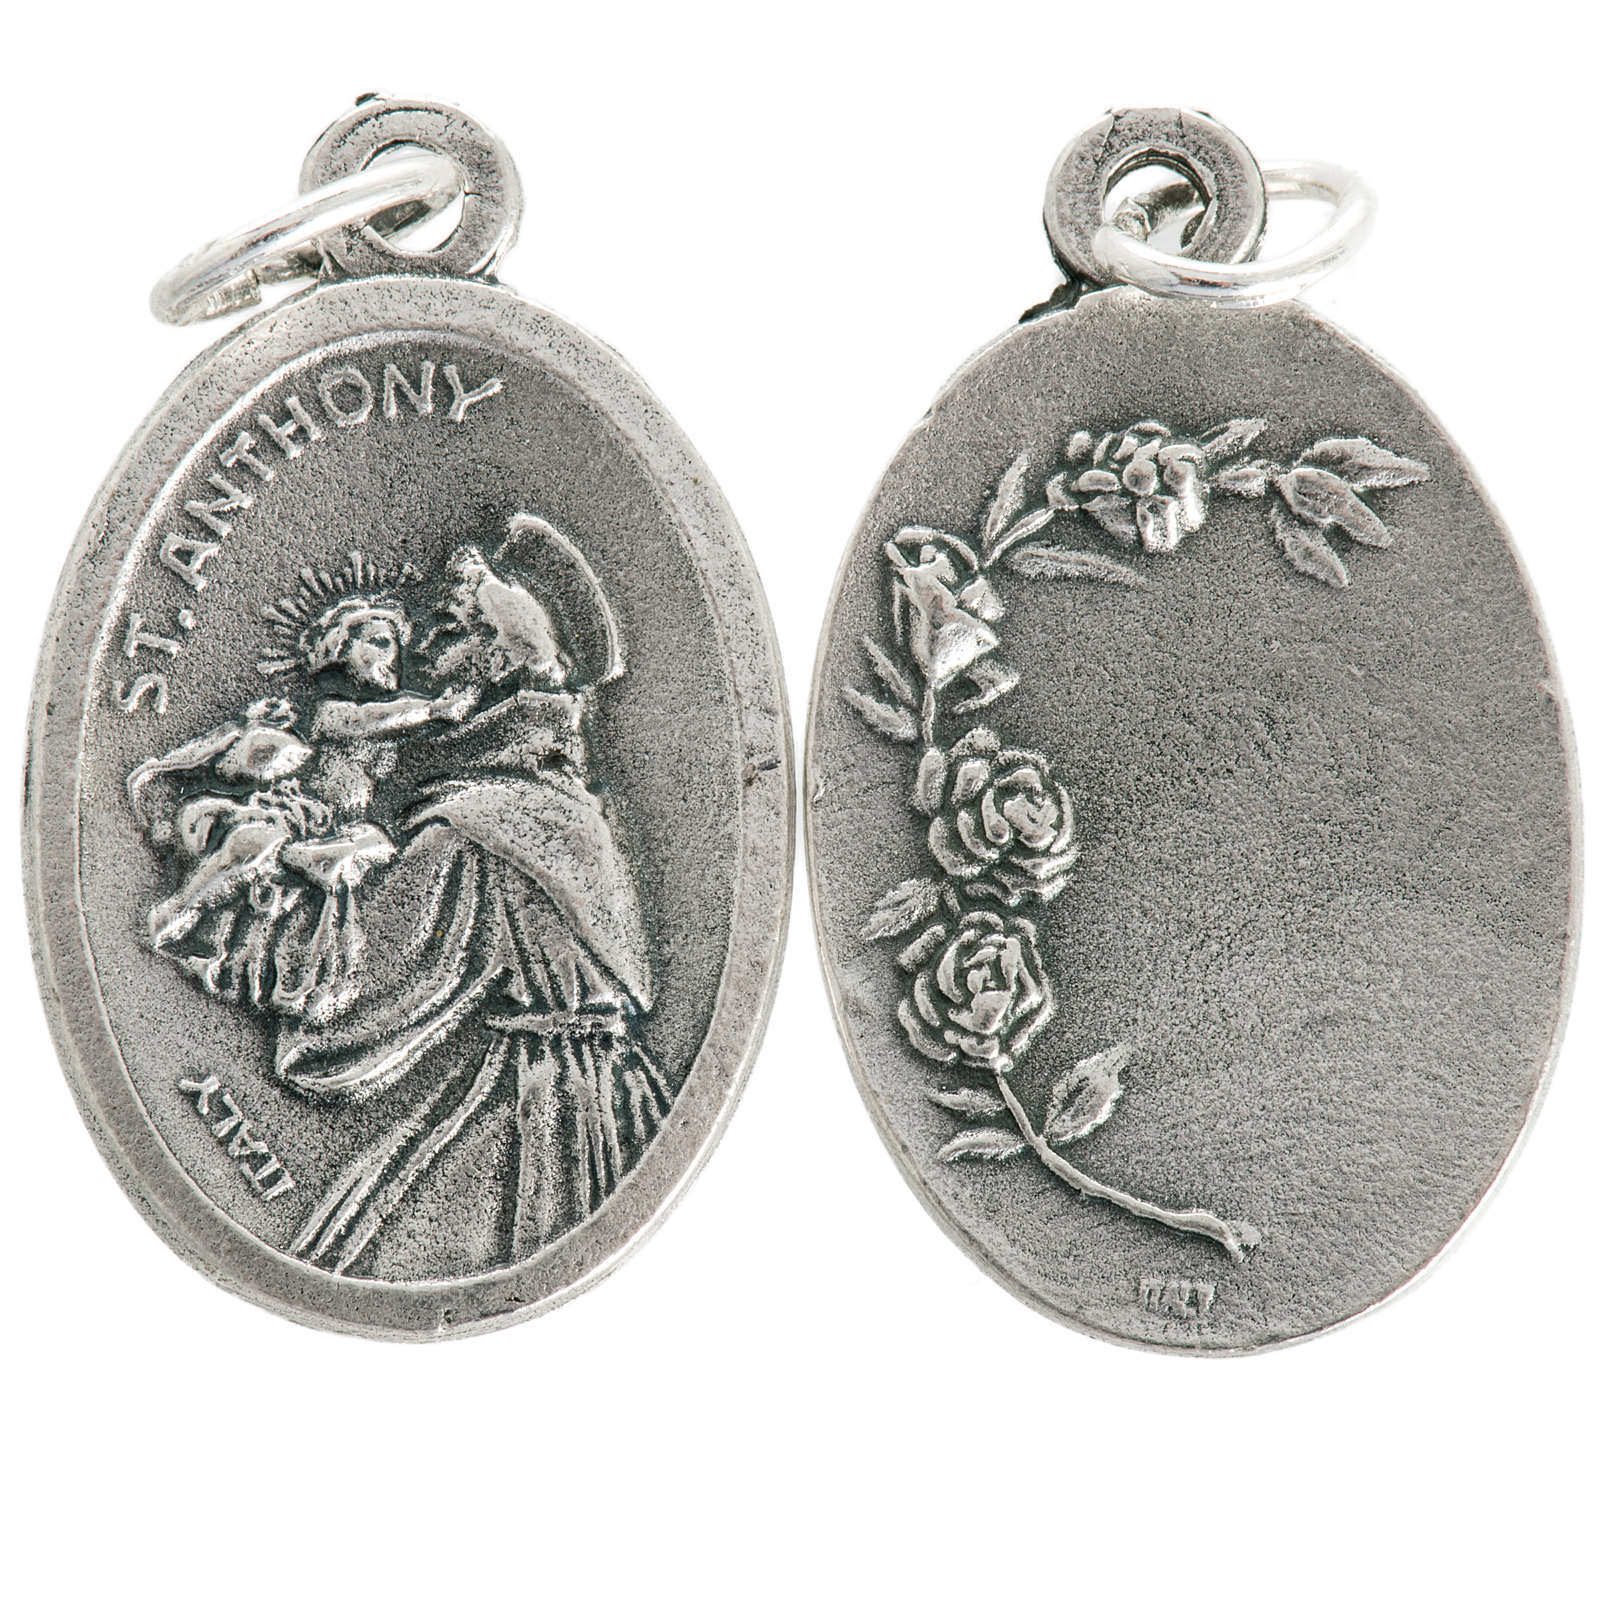 Saint Anthony devotional oval medal in metal 20mm 4